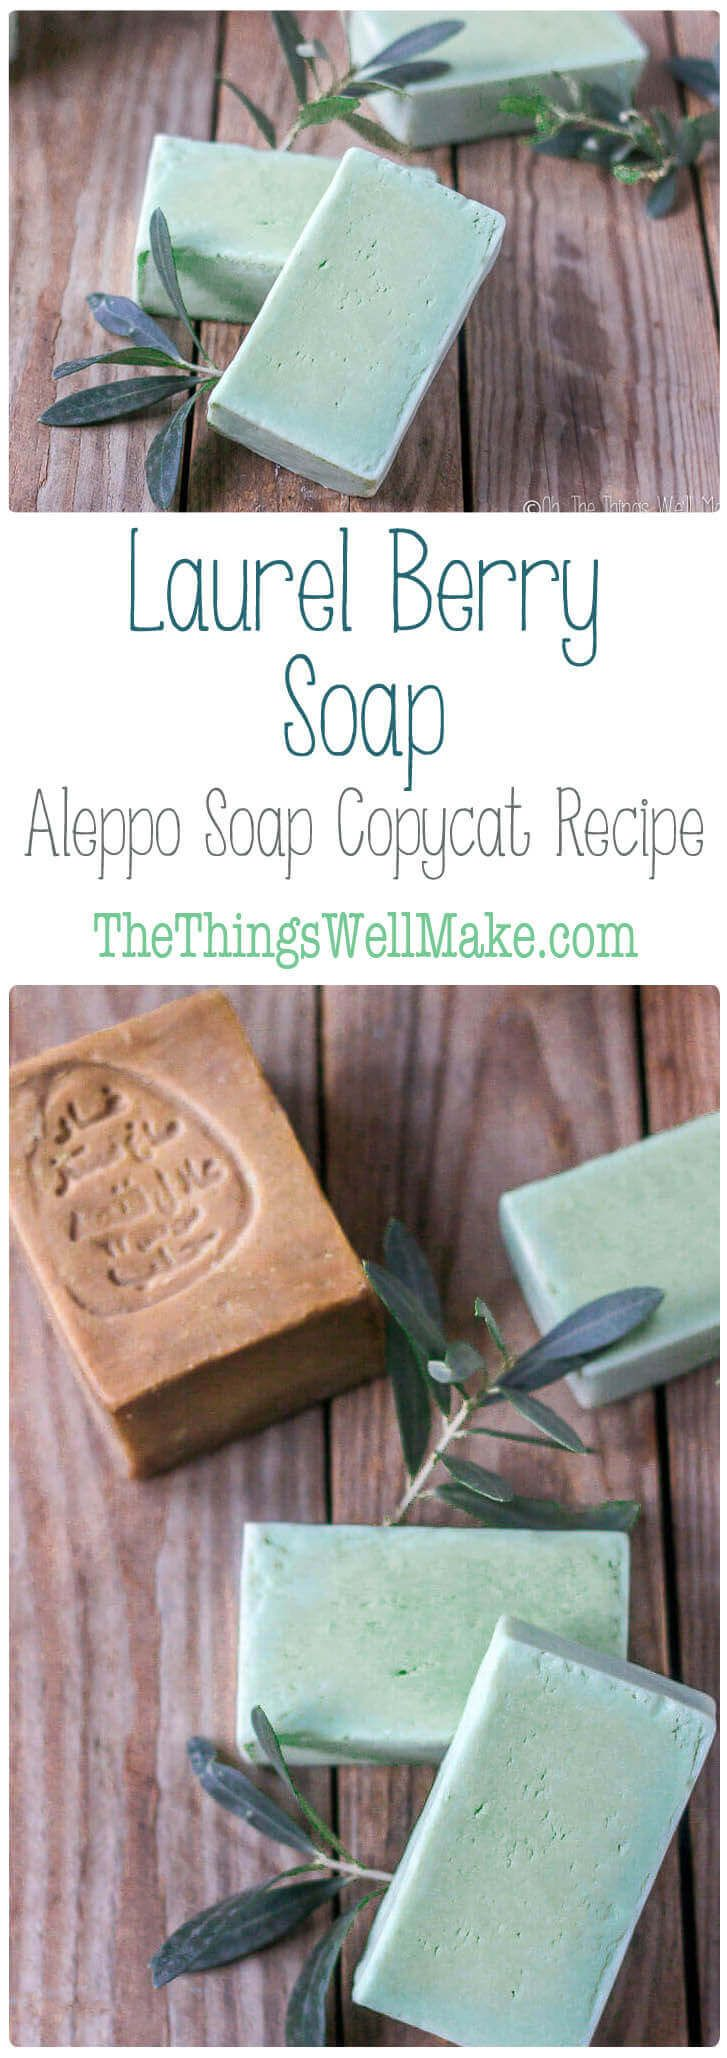 This laurel berry soap, or Aleppo soap copycat recipe, is a modified Castile soap that is mild, conditioning, and great for a number of skin conditions. #aleppo #soap #laurel via @thethingswellmake